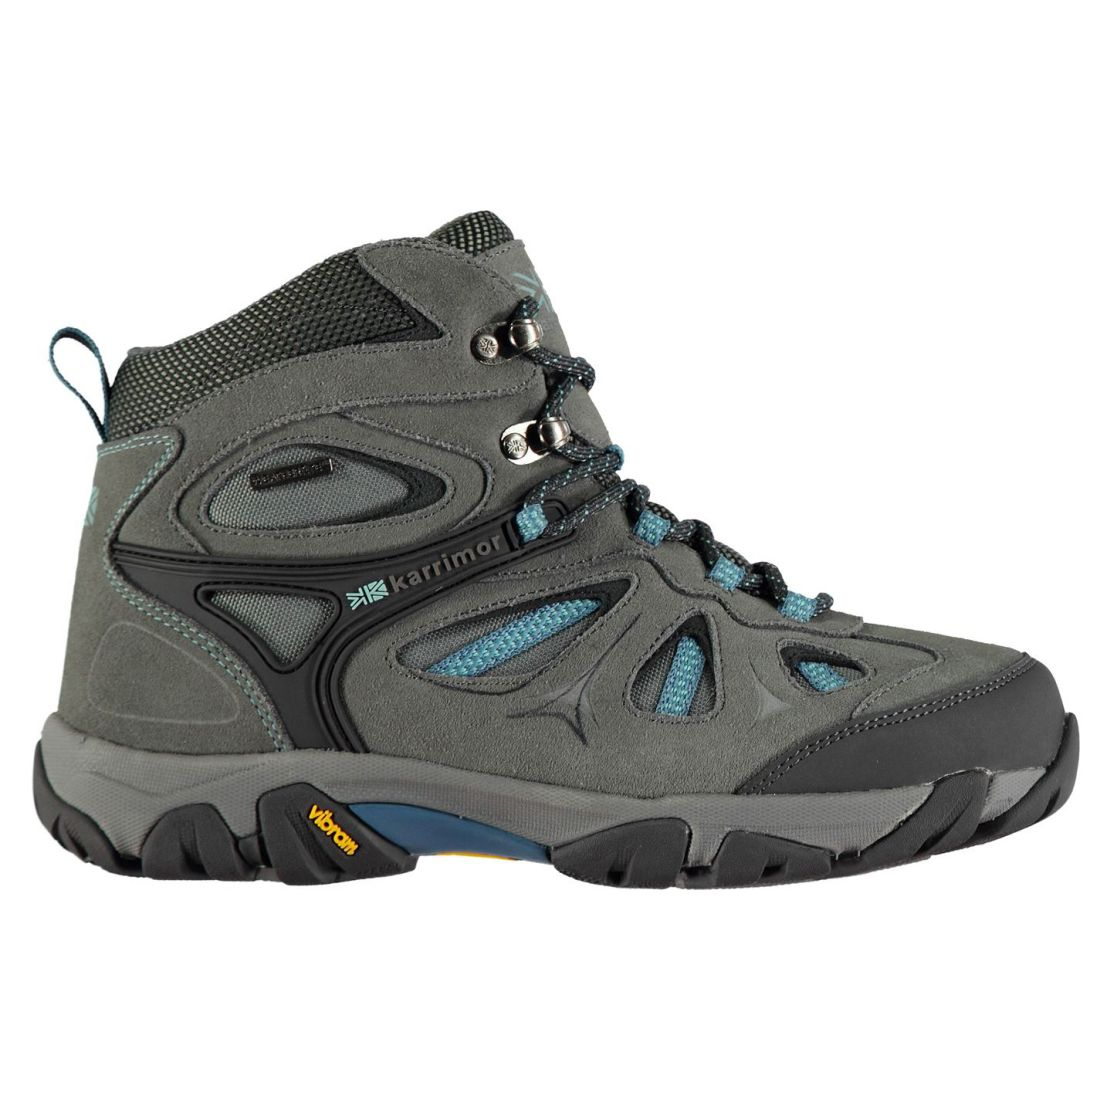 Karrimor Aspen Mid Water Repellent Walking Boots Ladies Laces Fastened